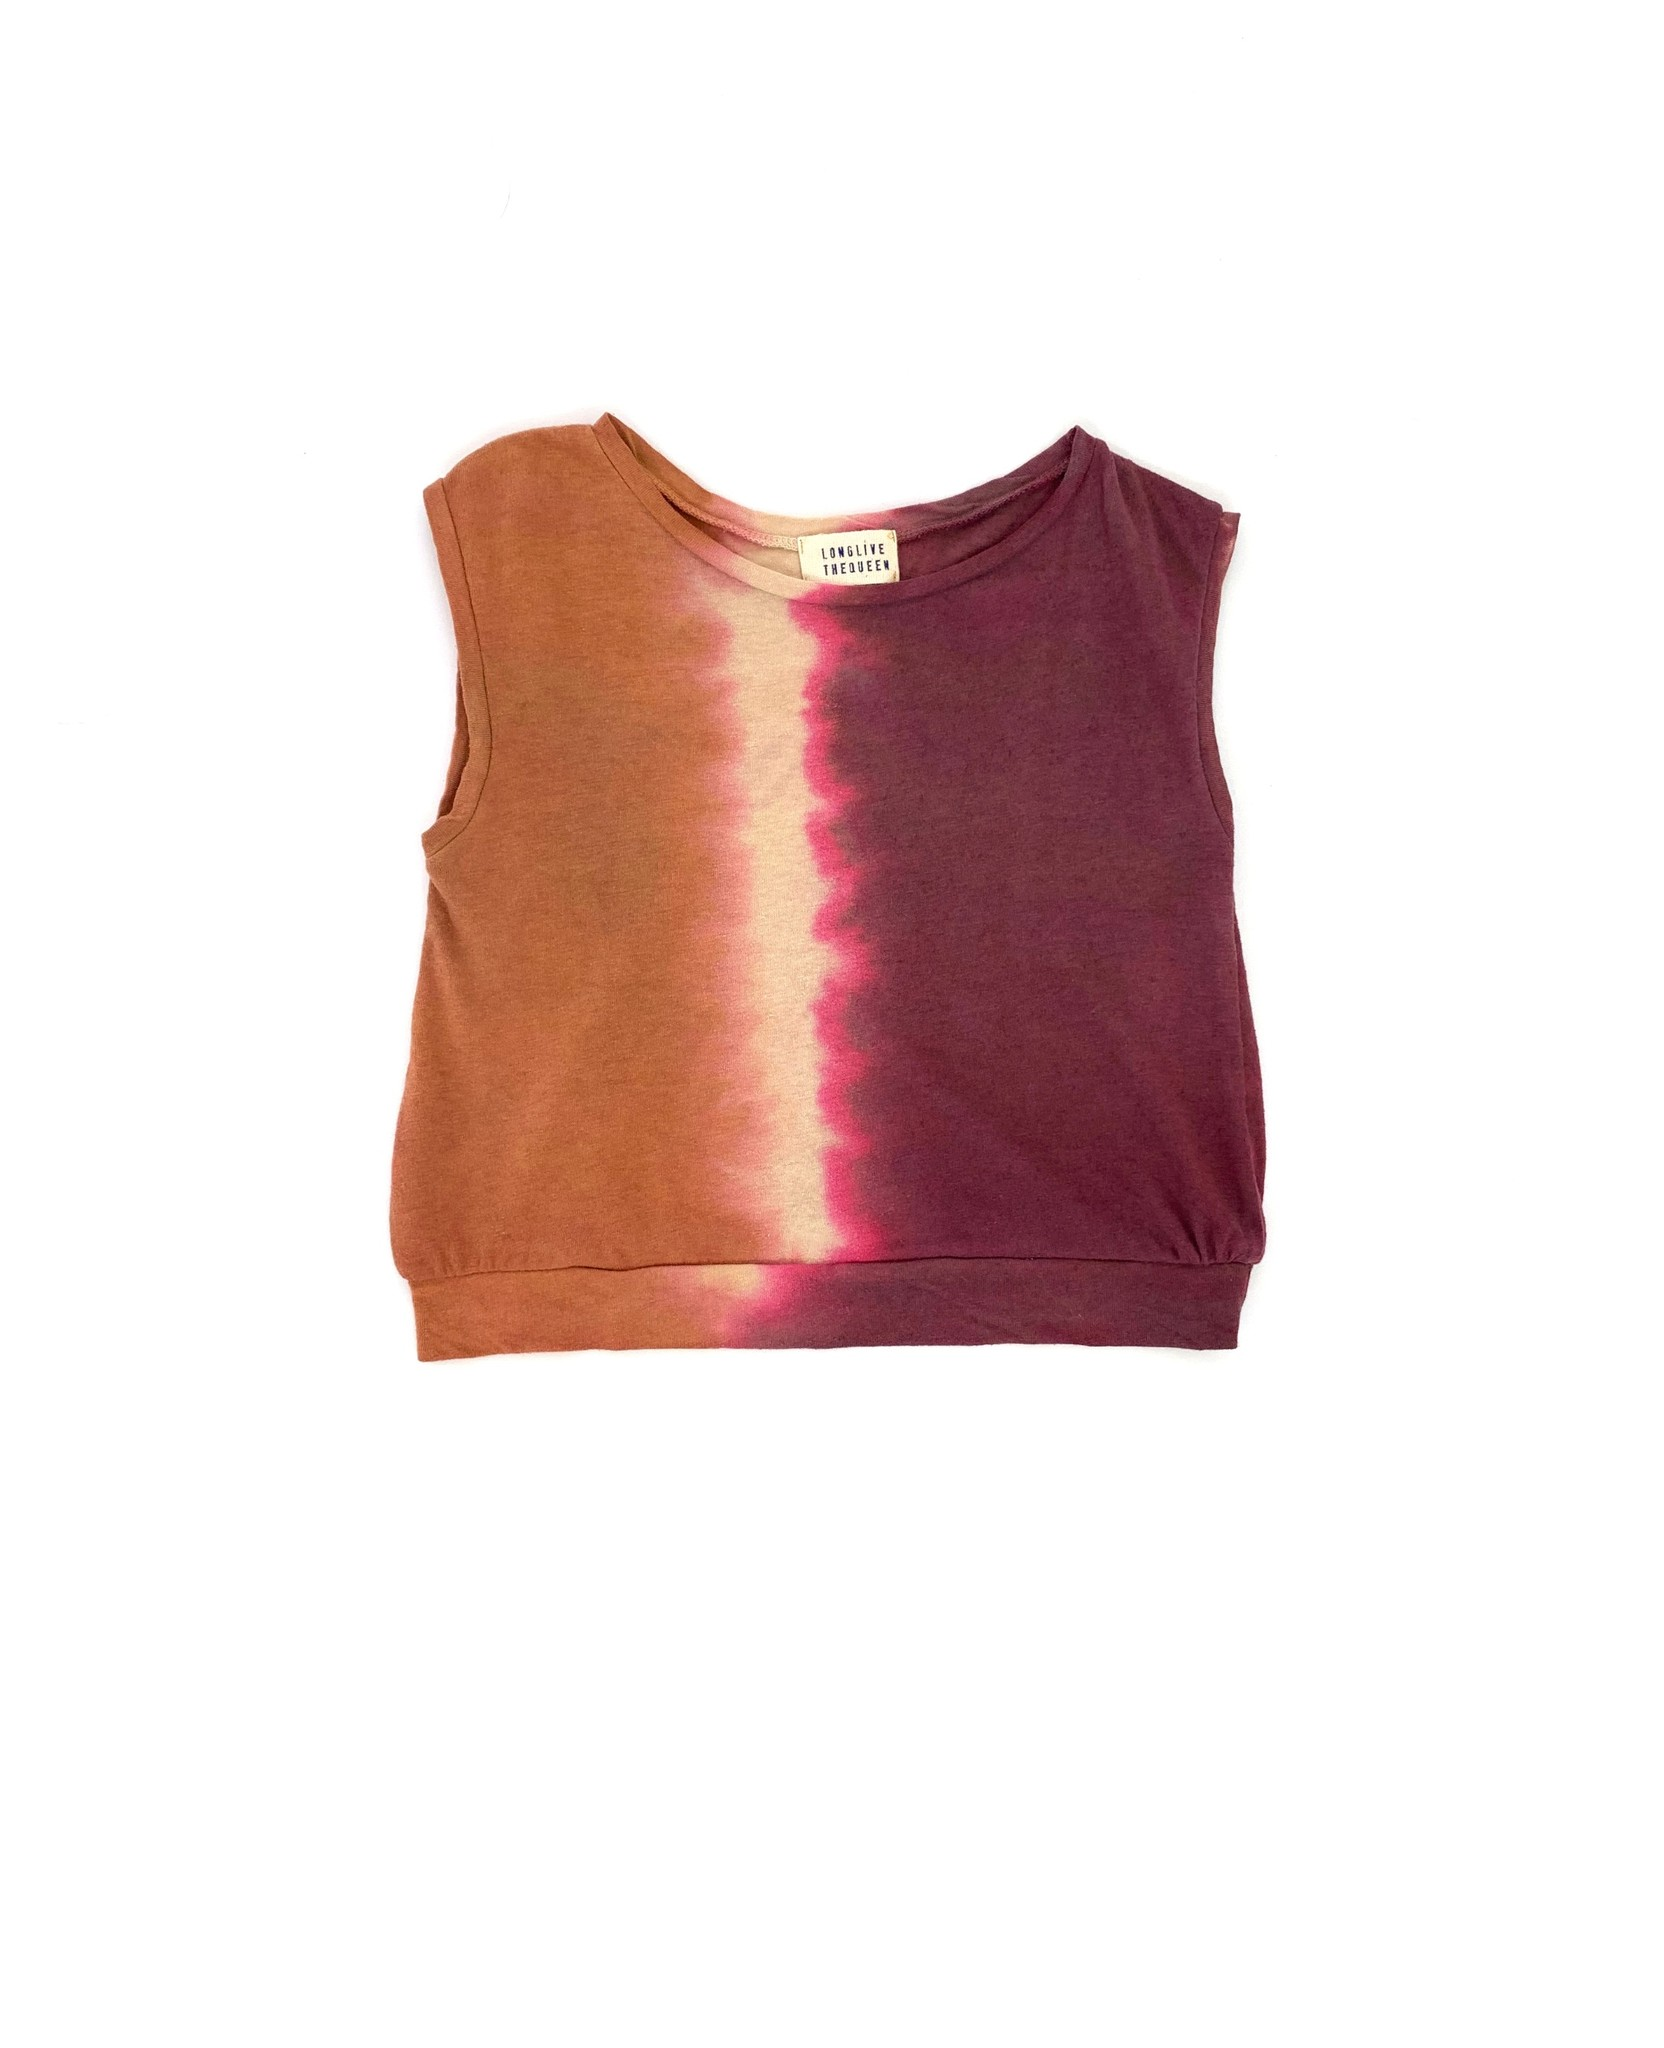 Sleeveless tee - Canyon Tie Dye-1